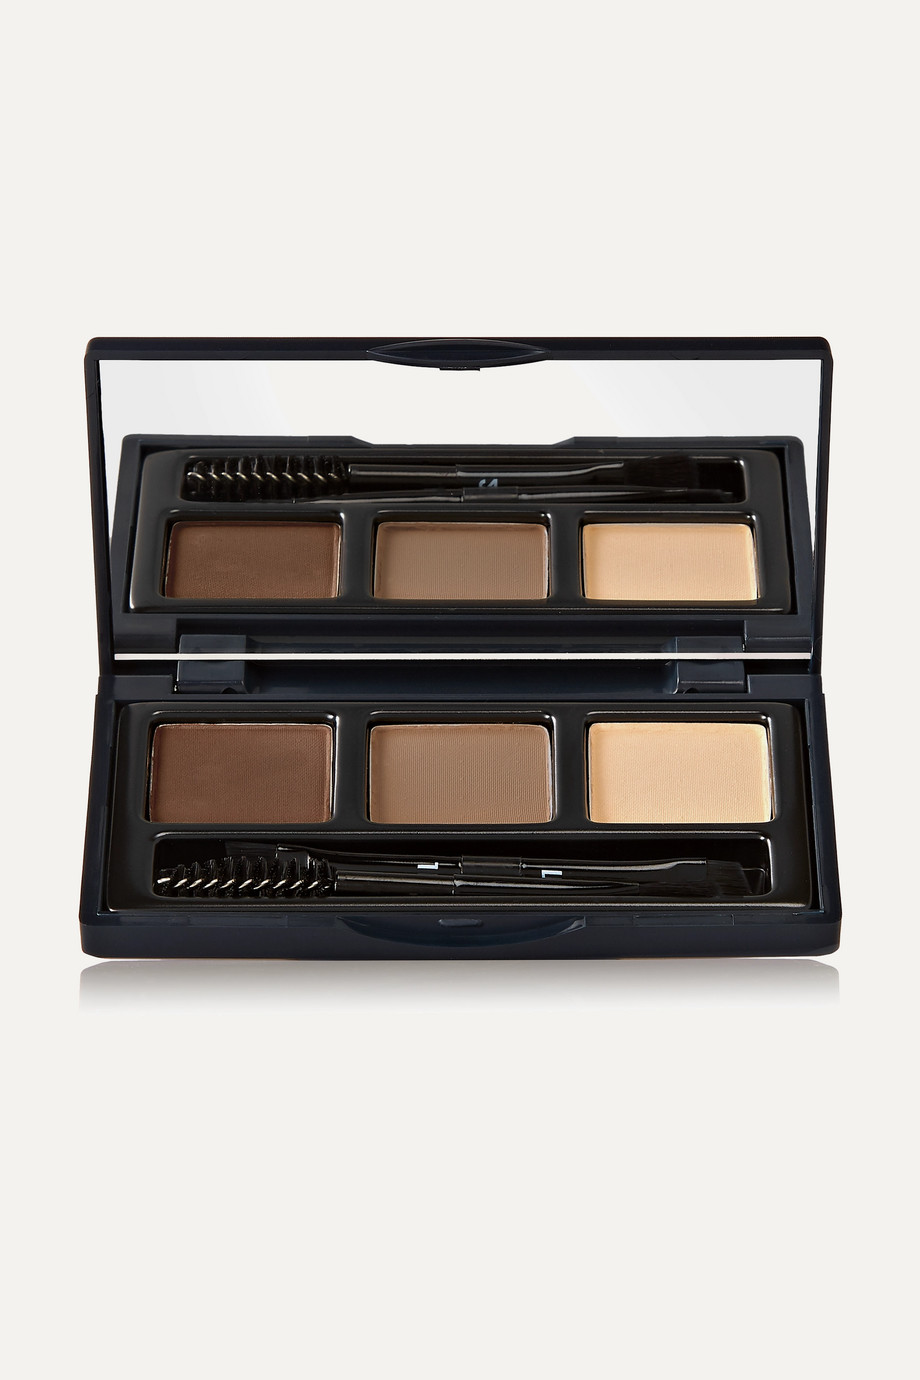 BBB LONDON Dream Brows Palette - Light/ Medium